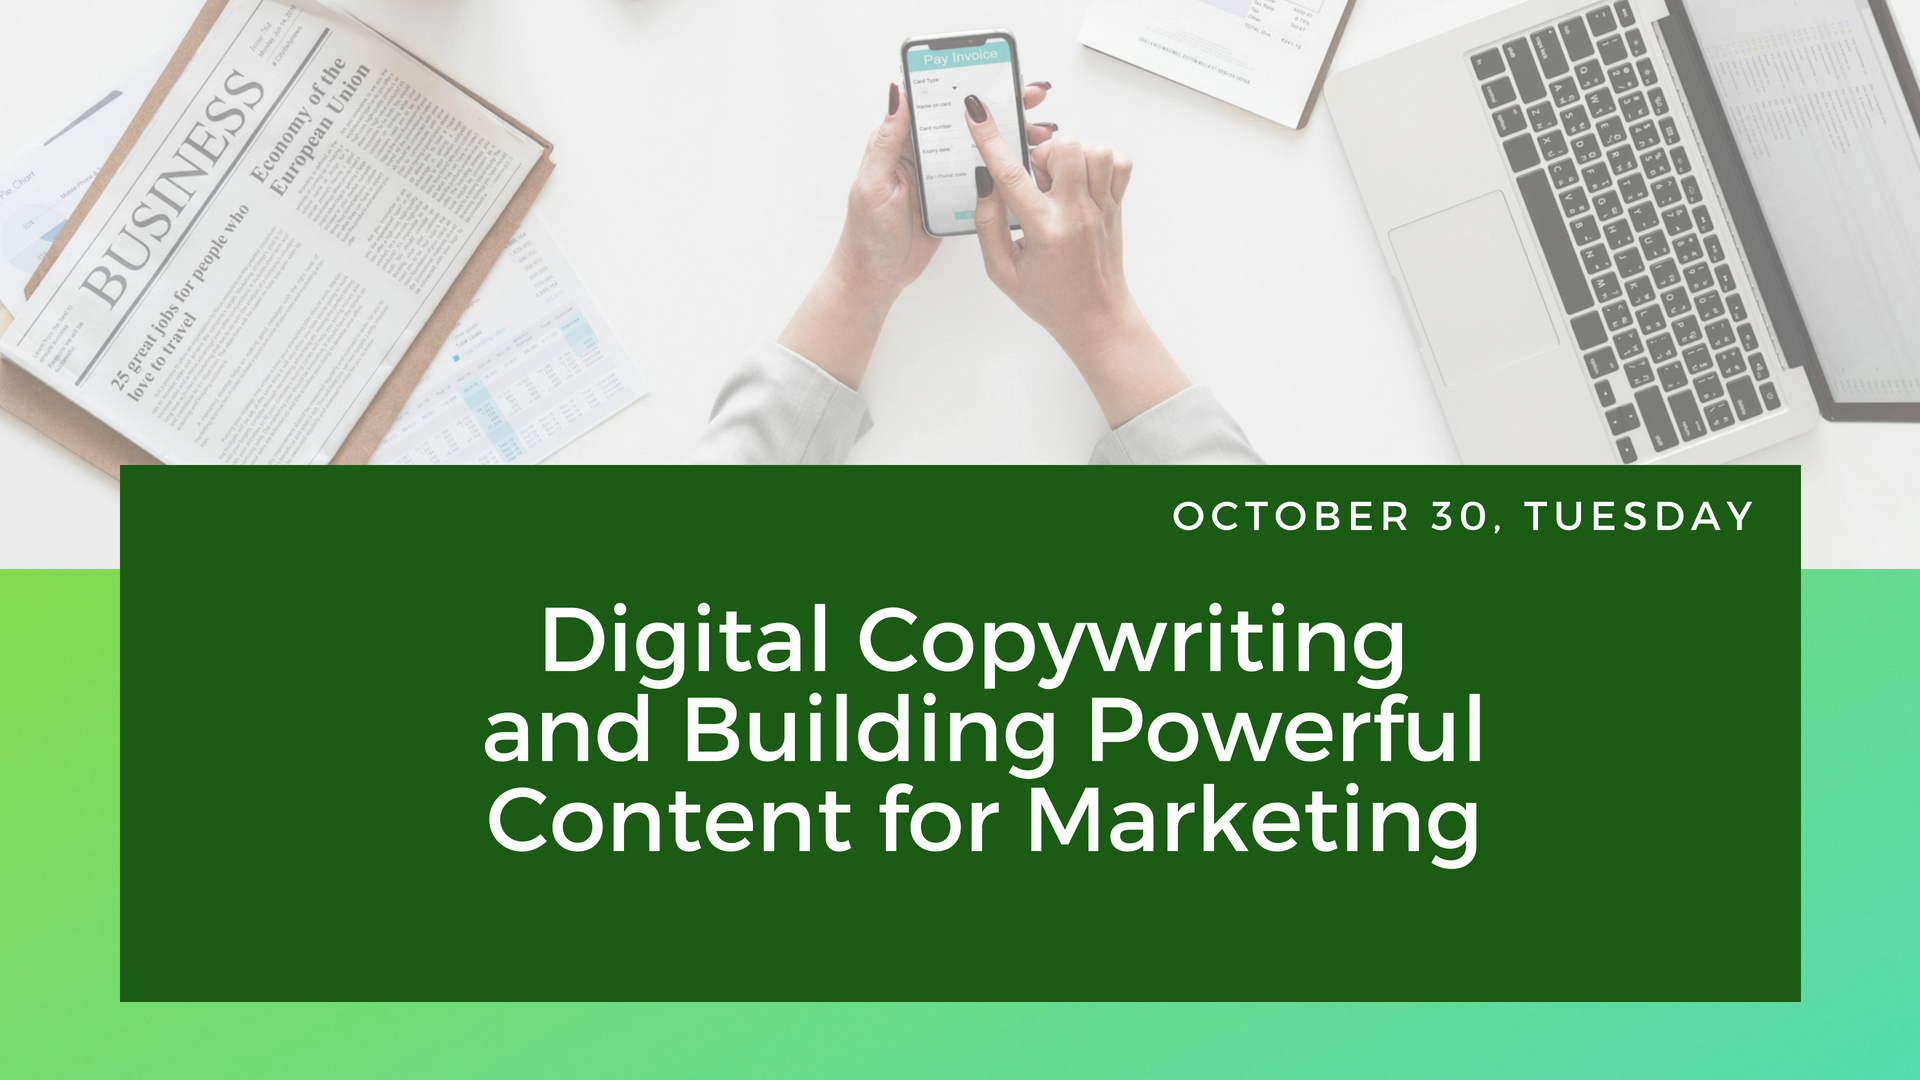 Content Marketing Oct 30